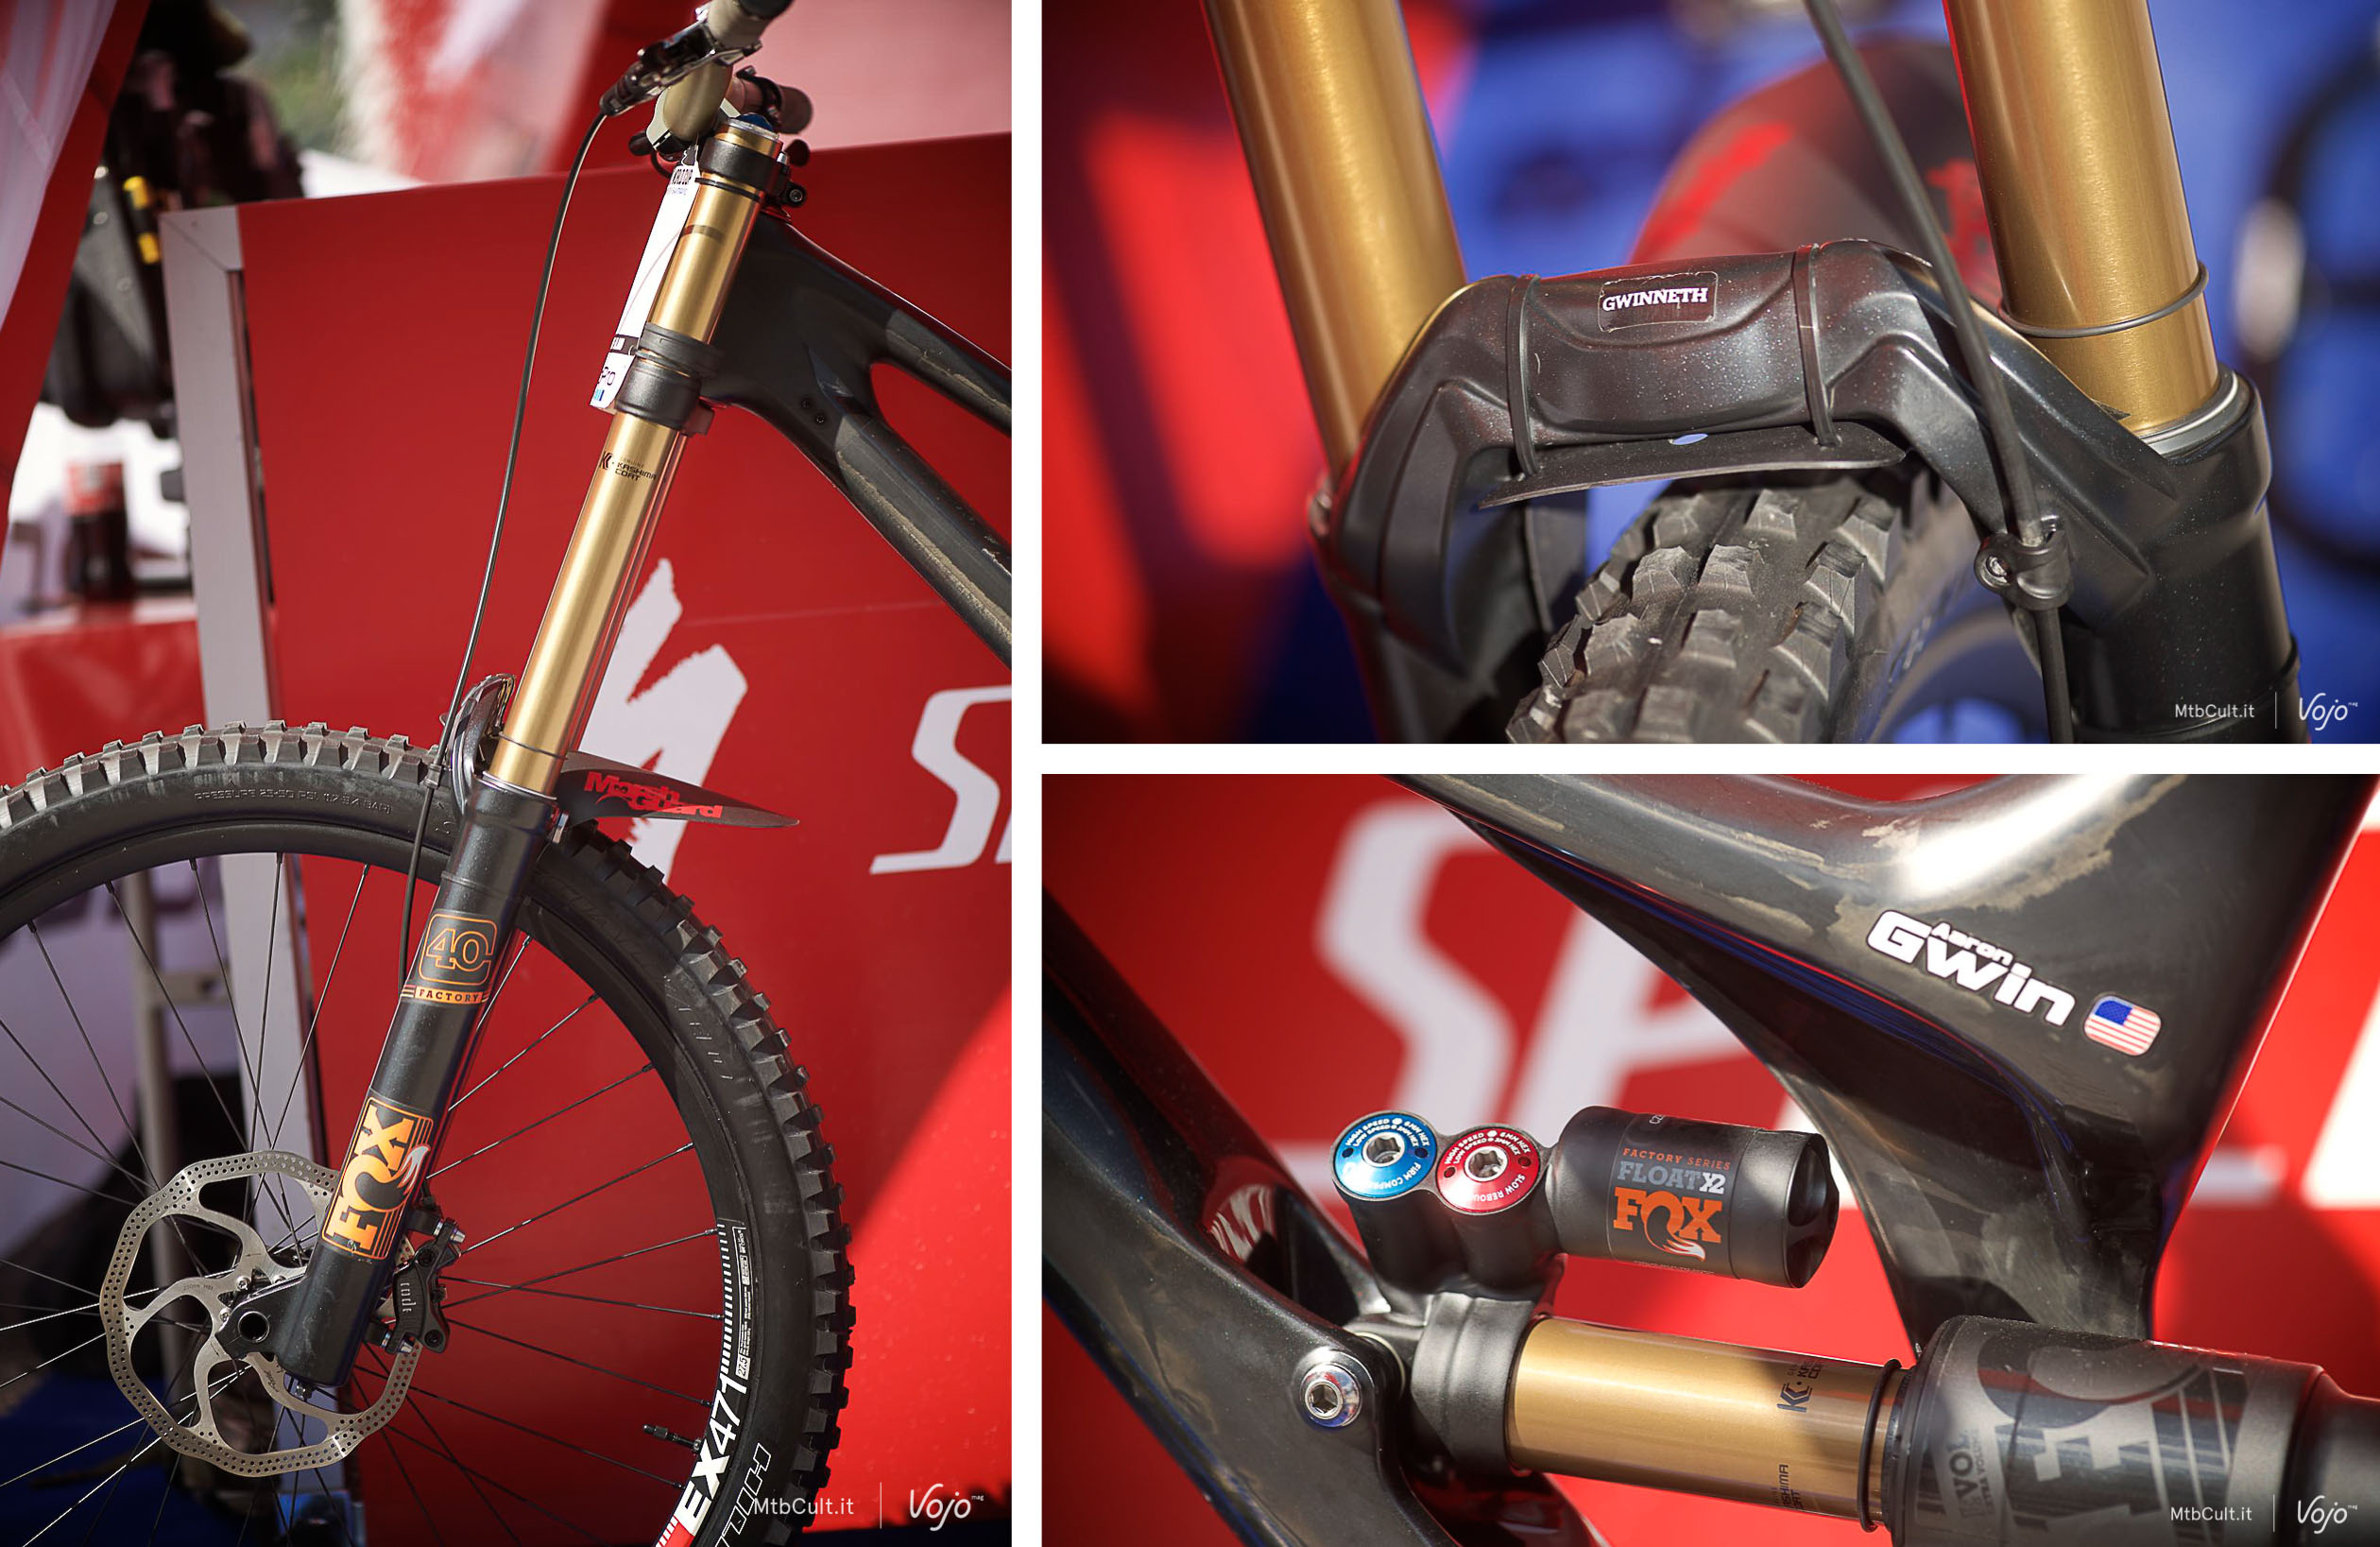 5-Specialized_Demo_8_Aaron_Gwin_Leogang_2015